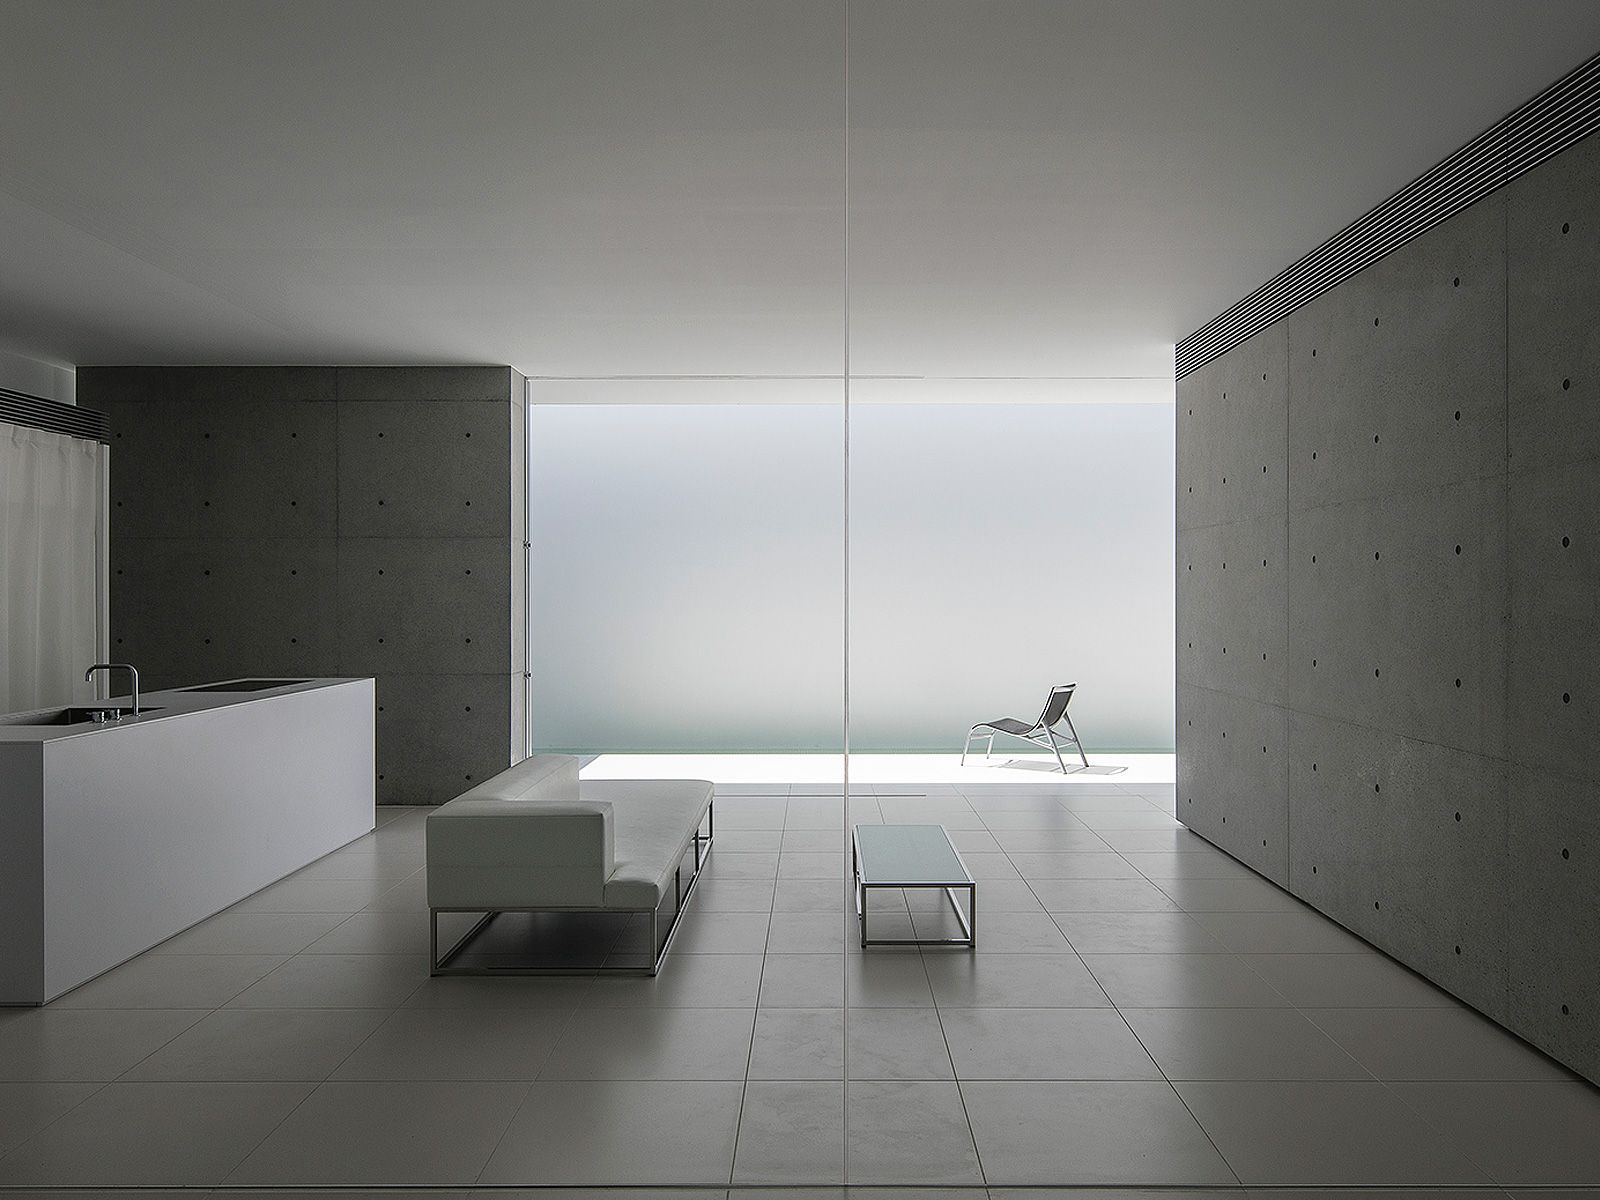 FU House Is A Minimal Home Located In Yamaguchi, Japan, Designed By Kubota